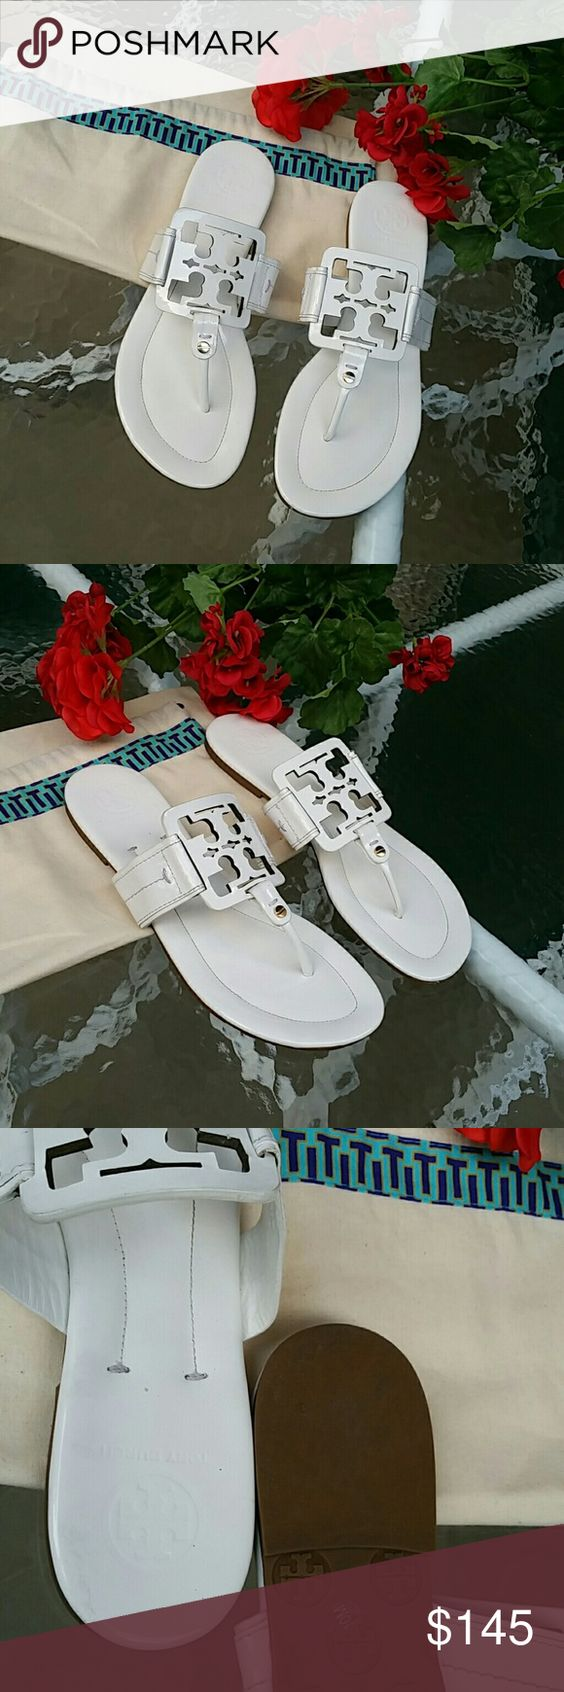 Tory burch miller square sandals Like new condition Tory Burch Shoes